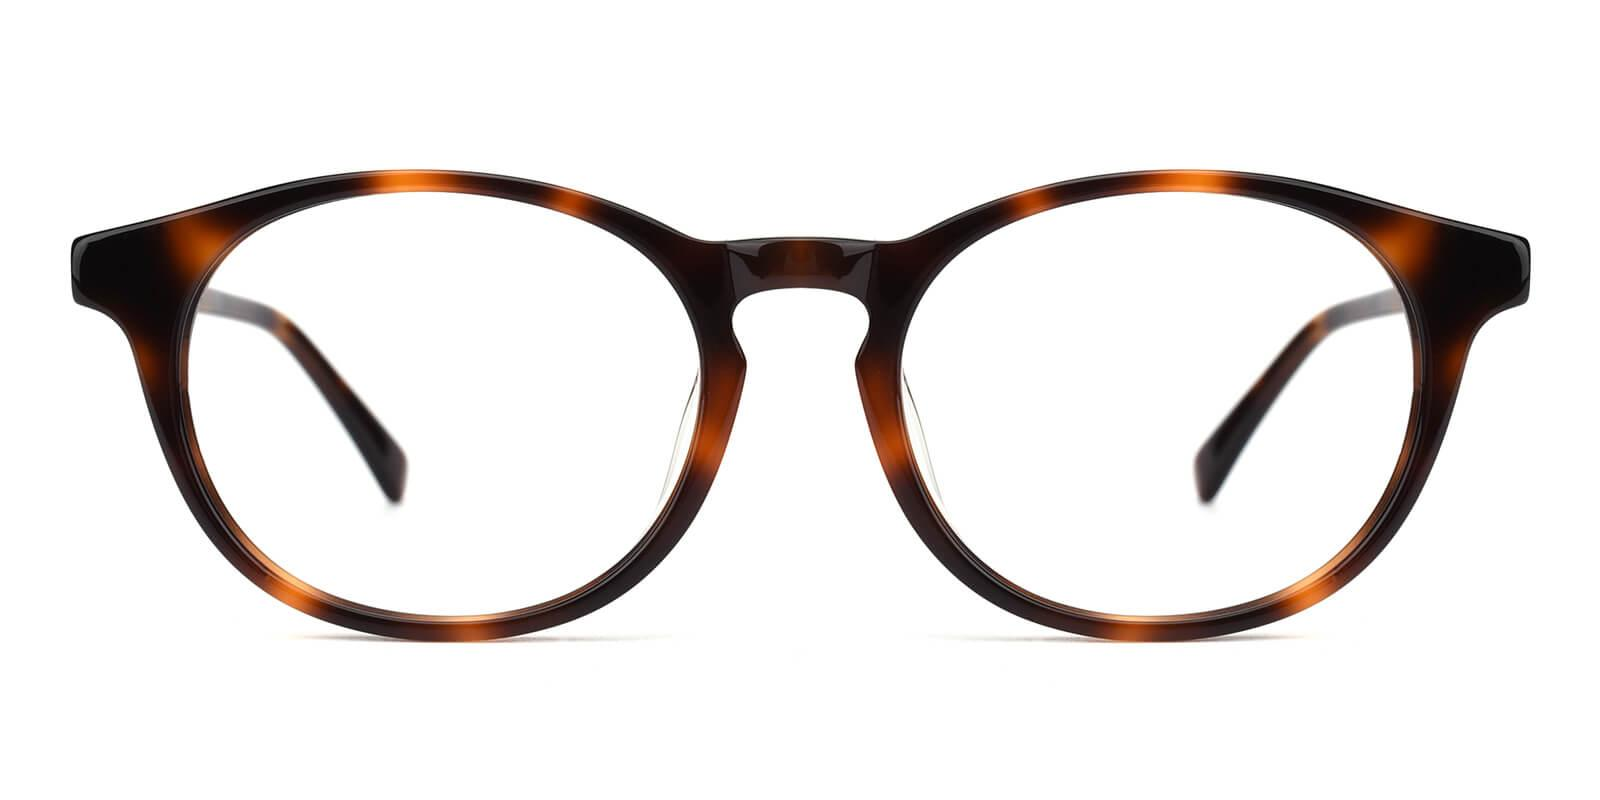 Concept-Tortoise-Oval-Acetate-Eyeglasses-additional2